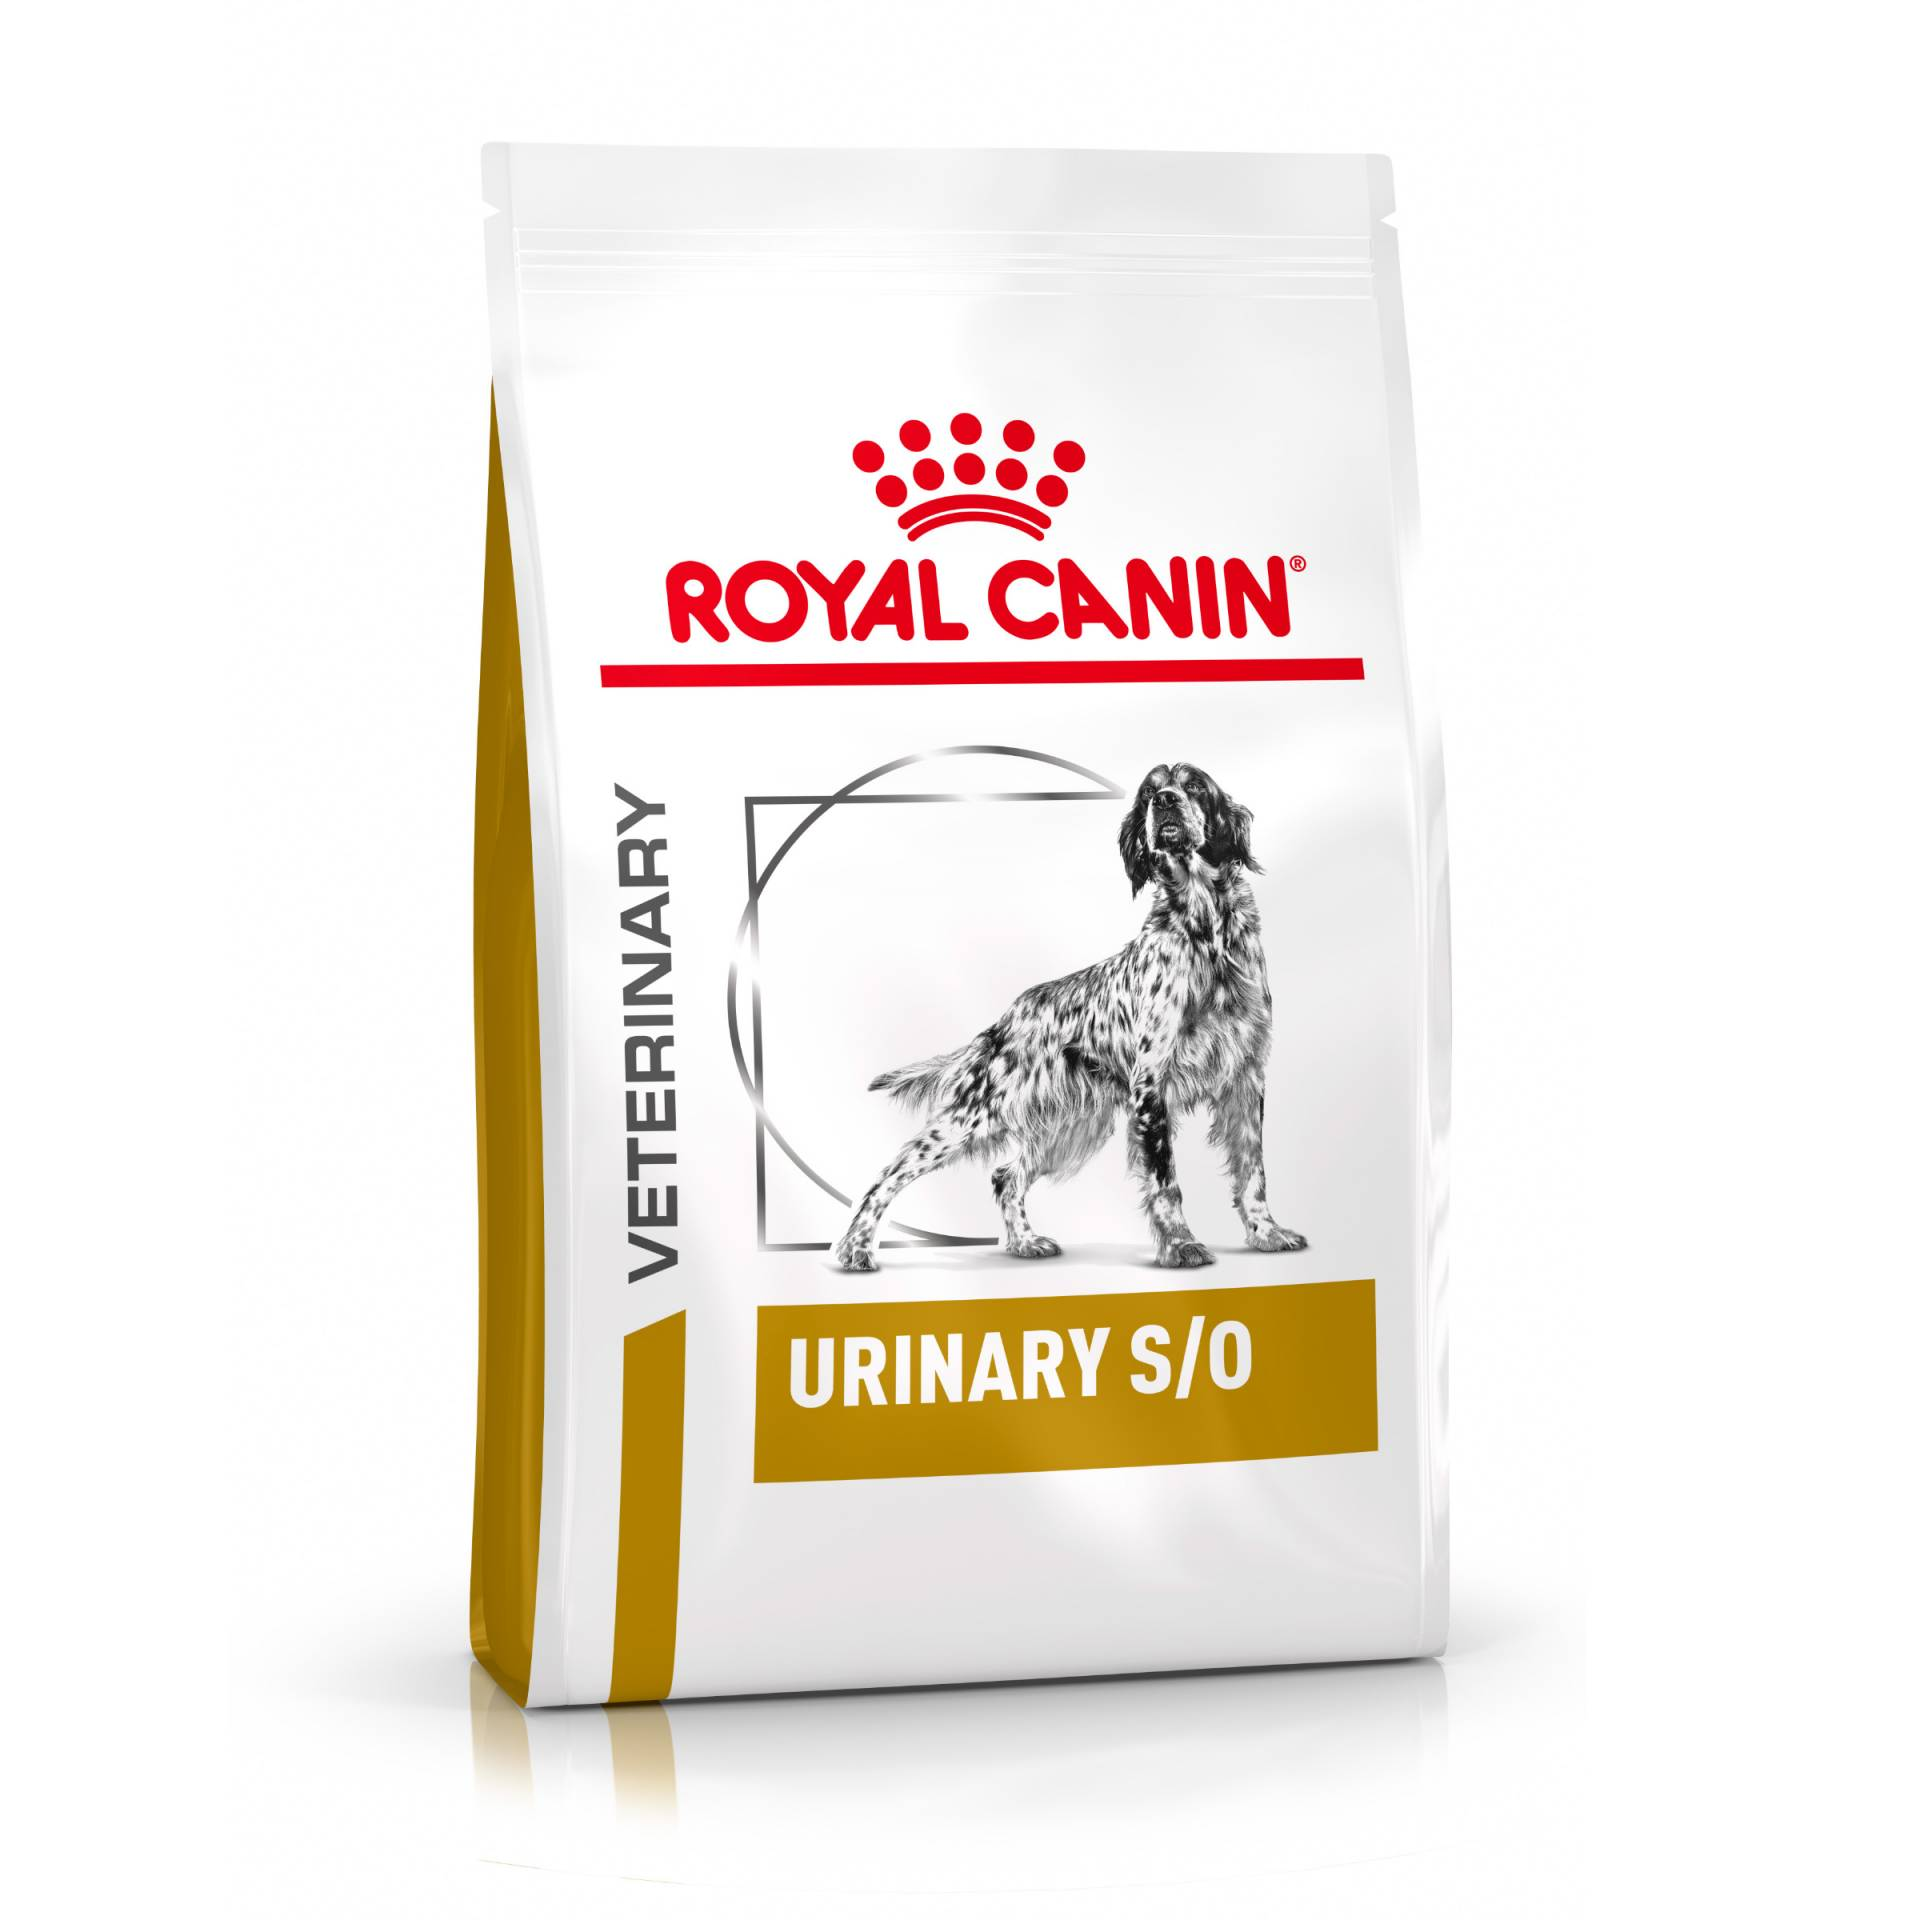 Royal Canin Veterinary Diet Canine Urinary S/O LP 18 - 13 kg von Royal Canin Veterinary Diet